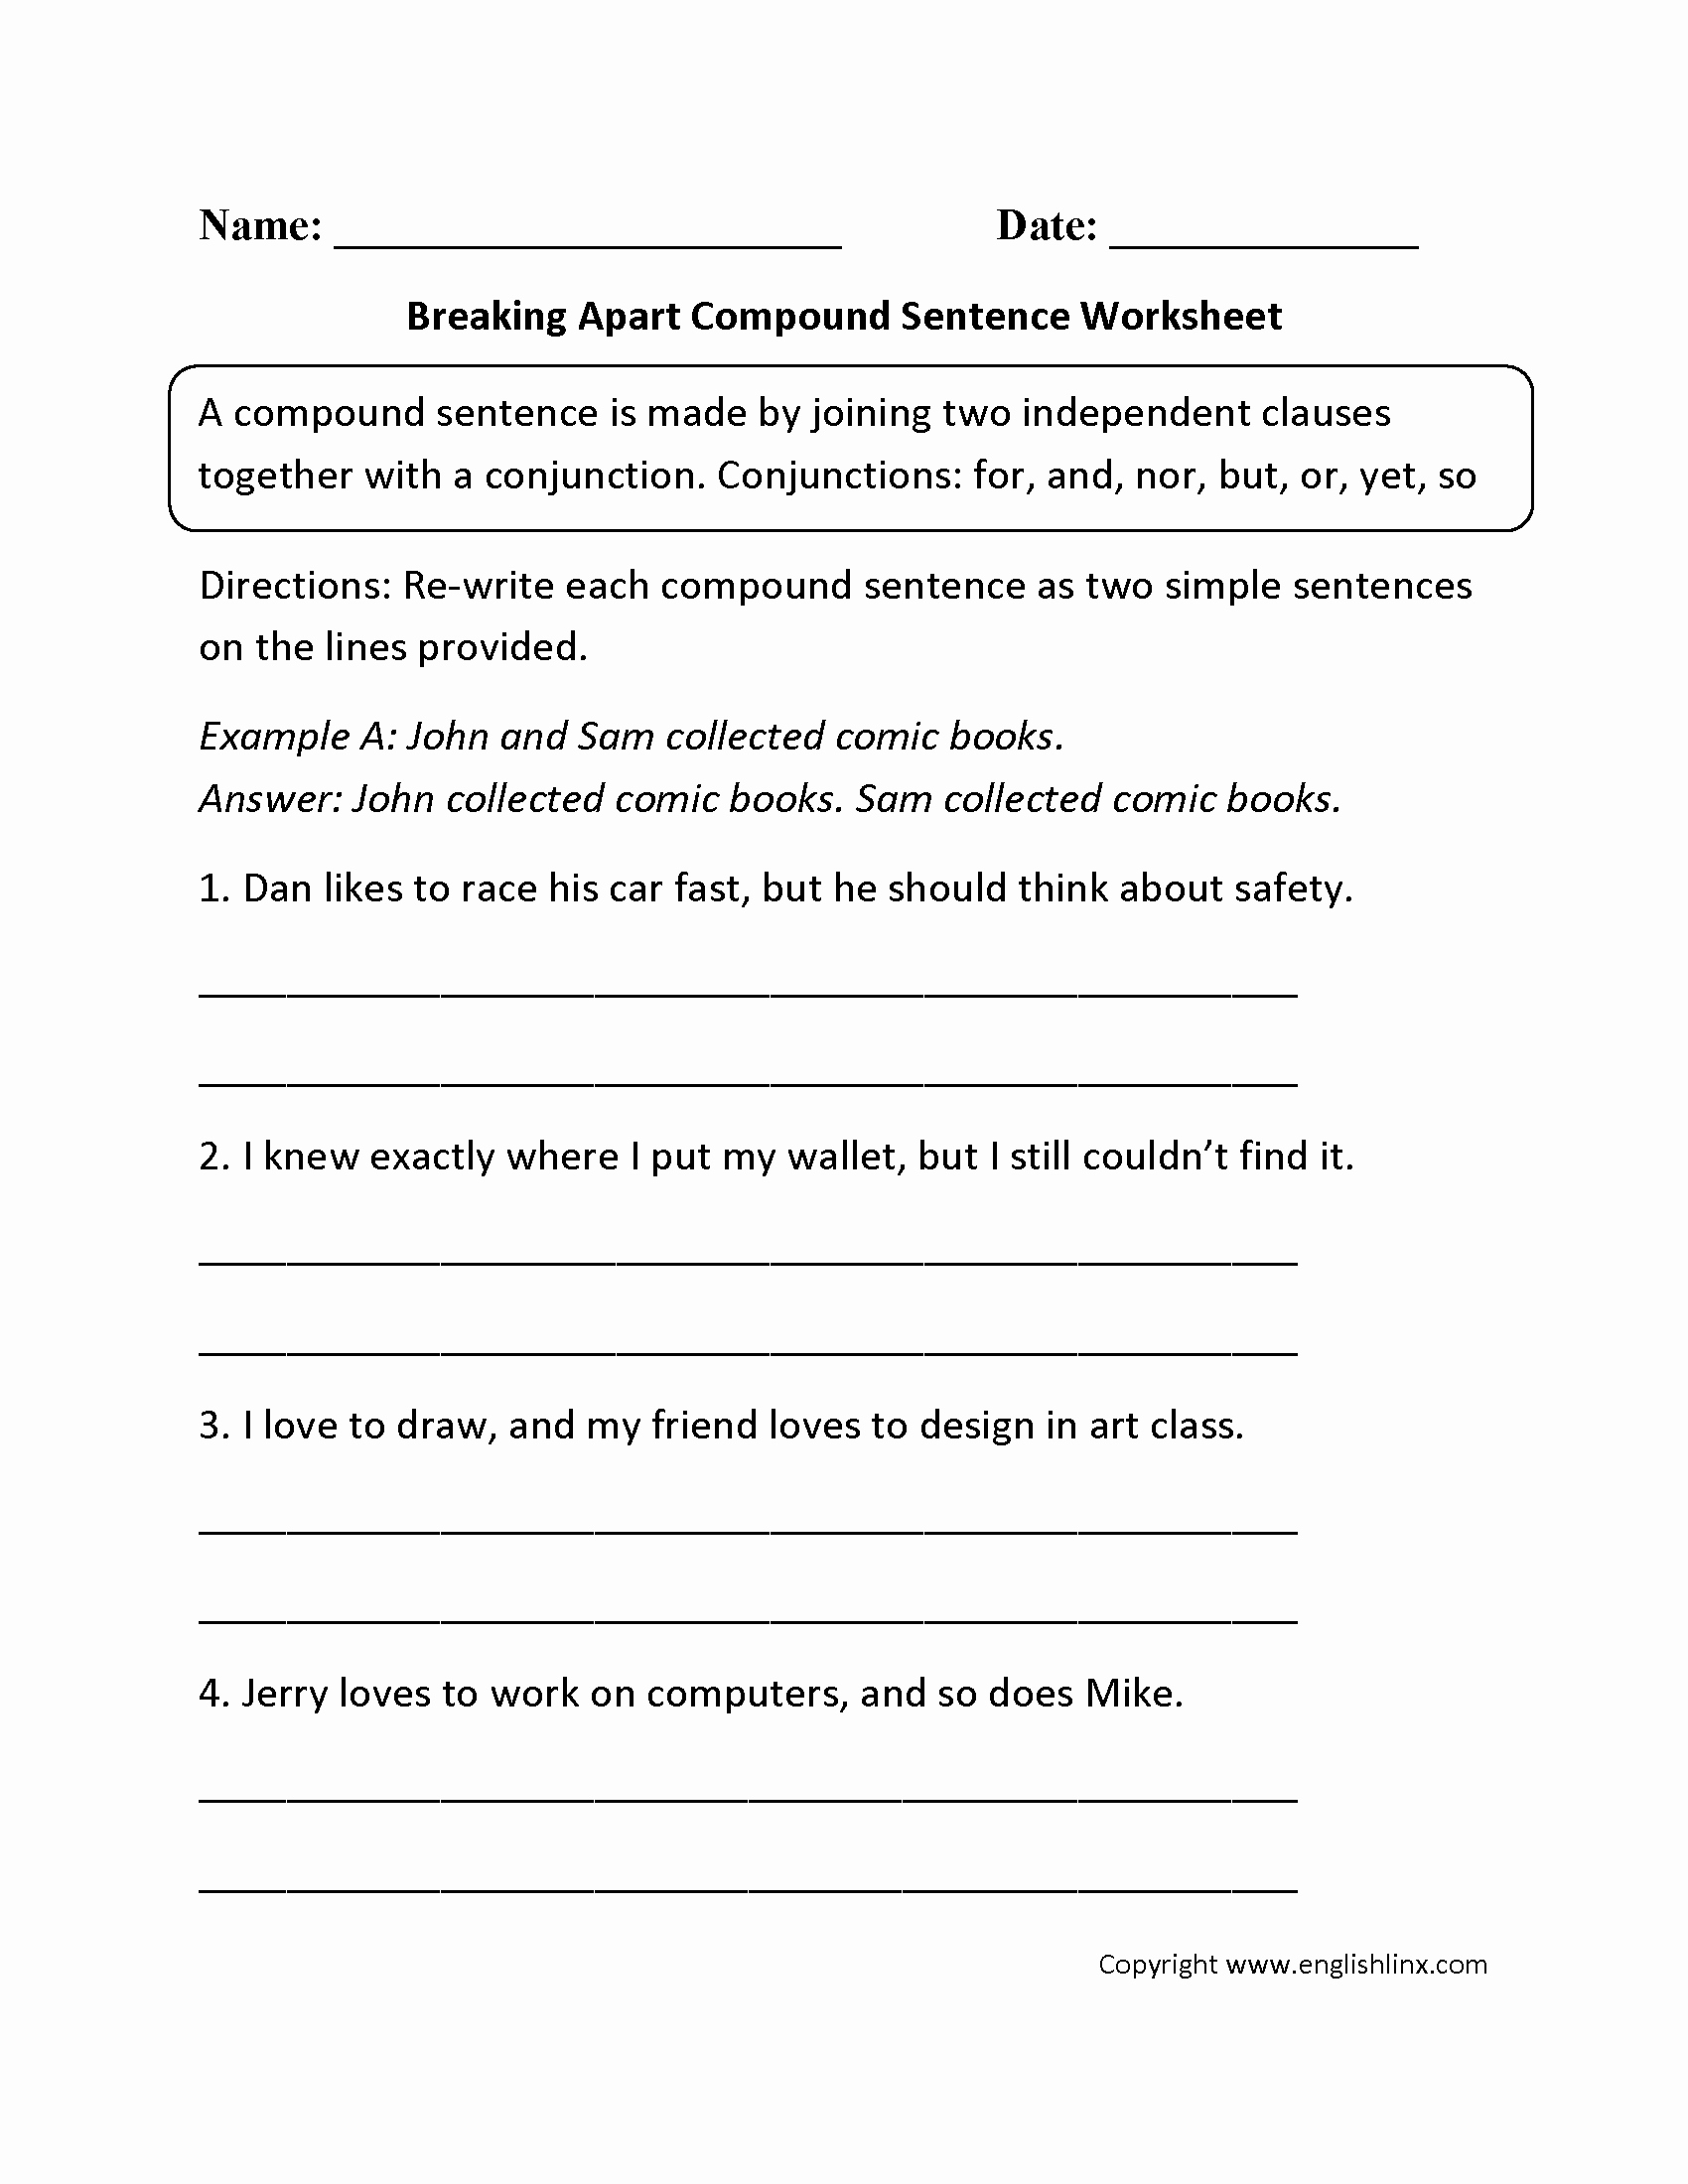 Compound Sentences Worksheet Pdf Inspirational Sentence Structure Worksheets